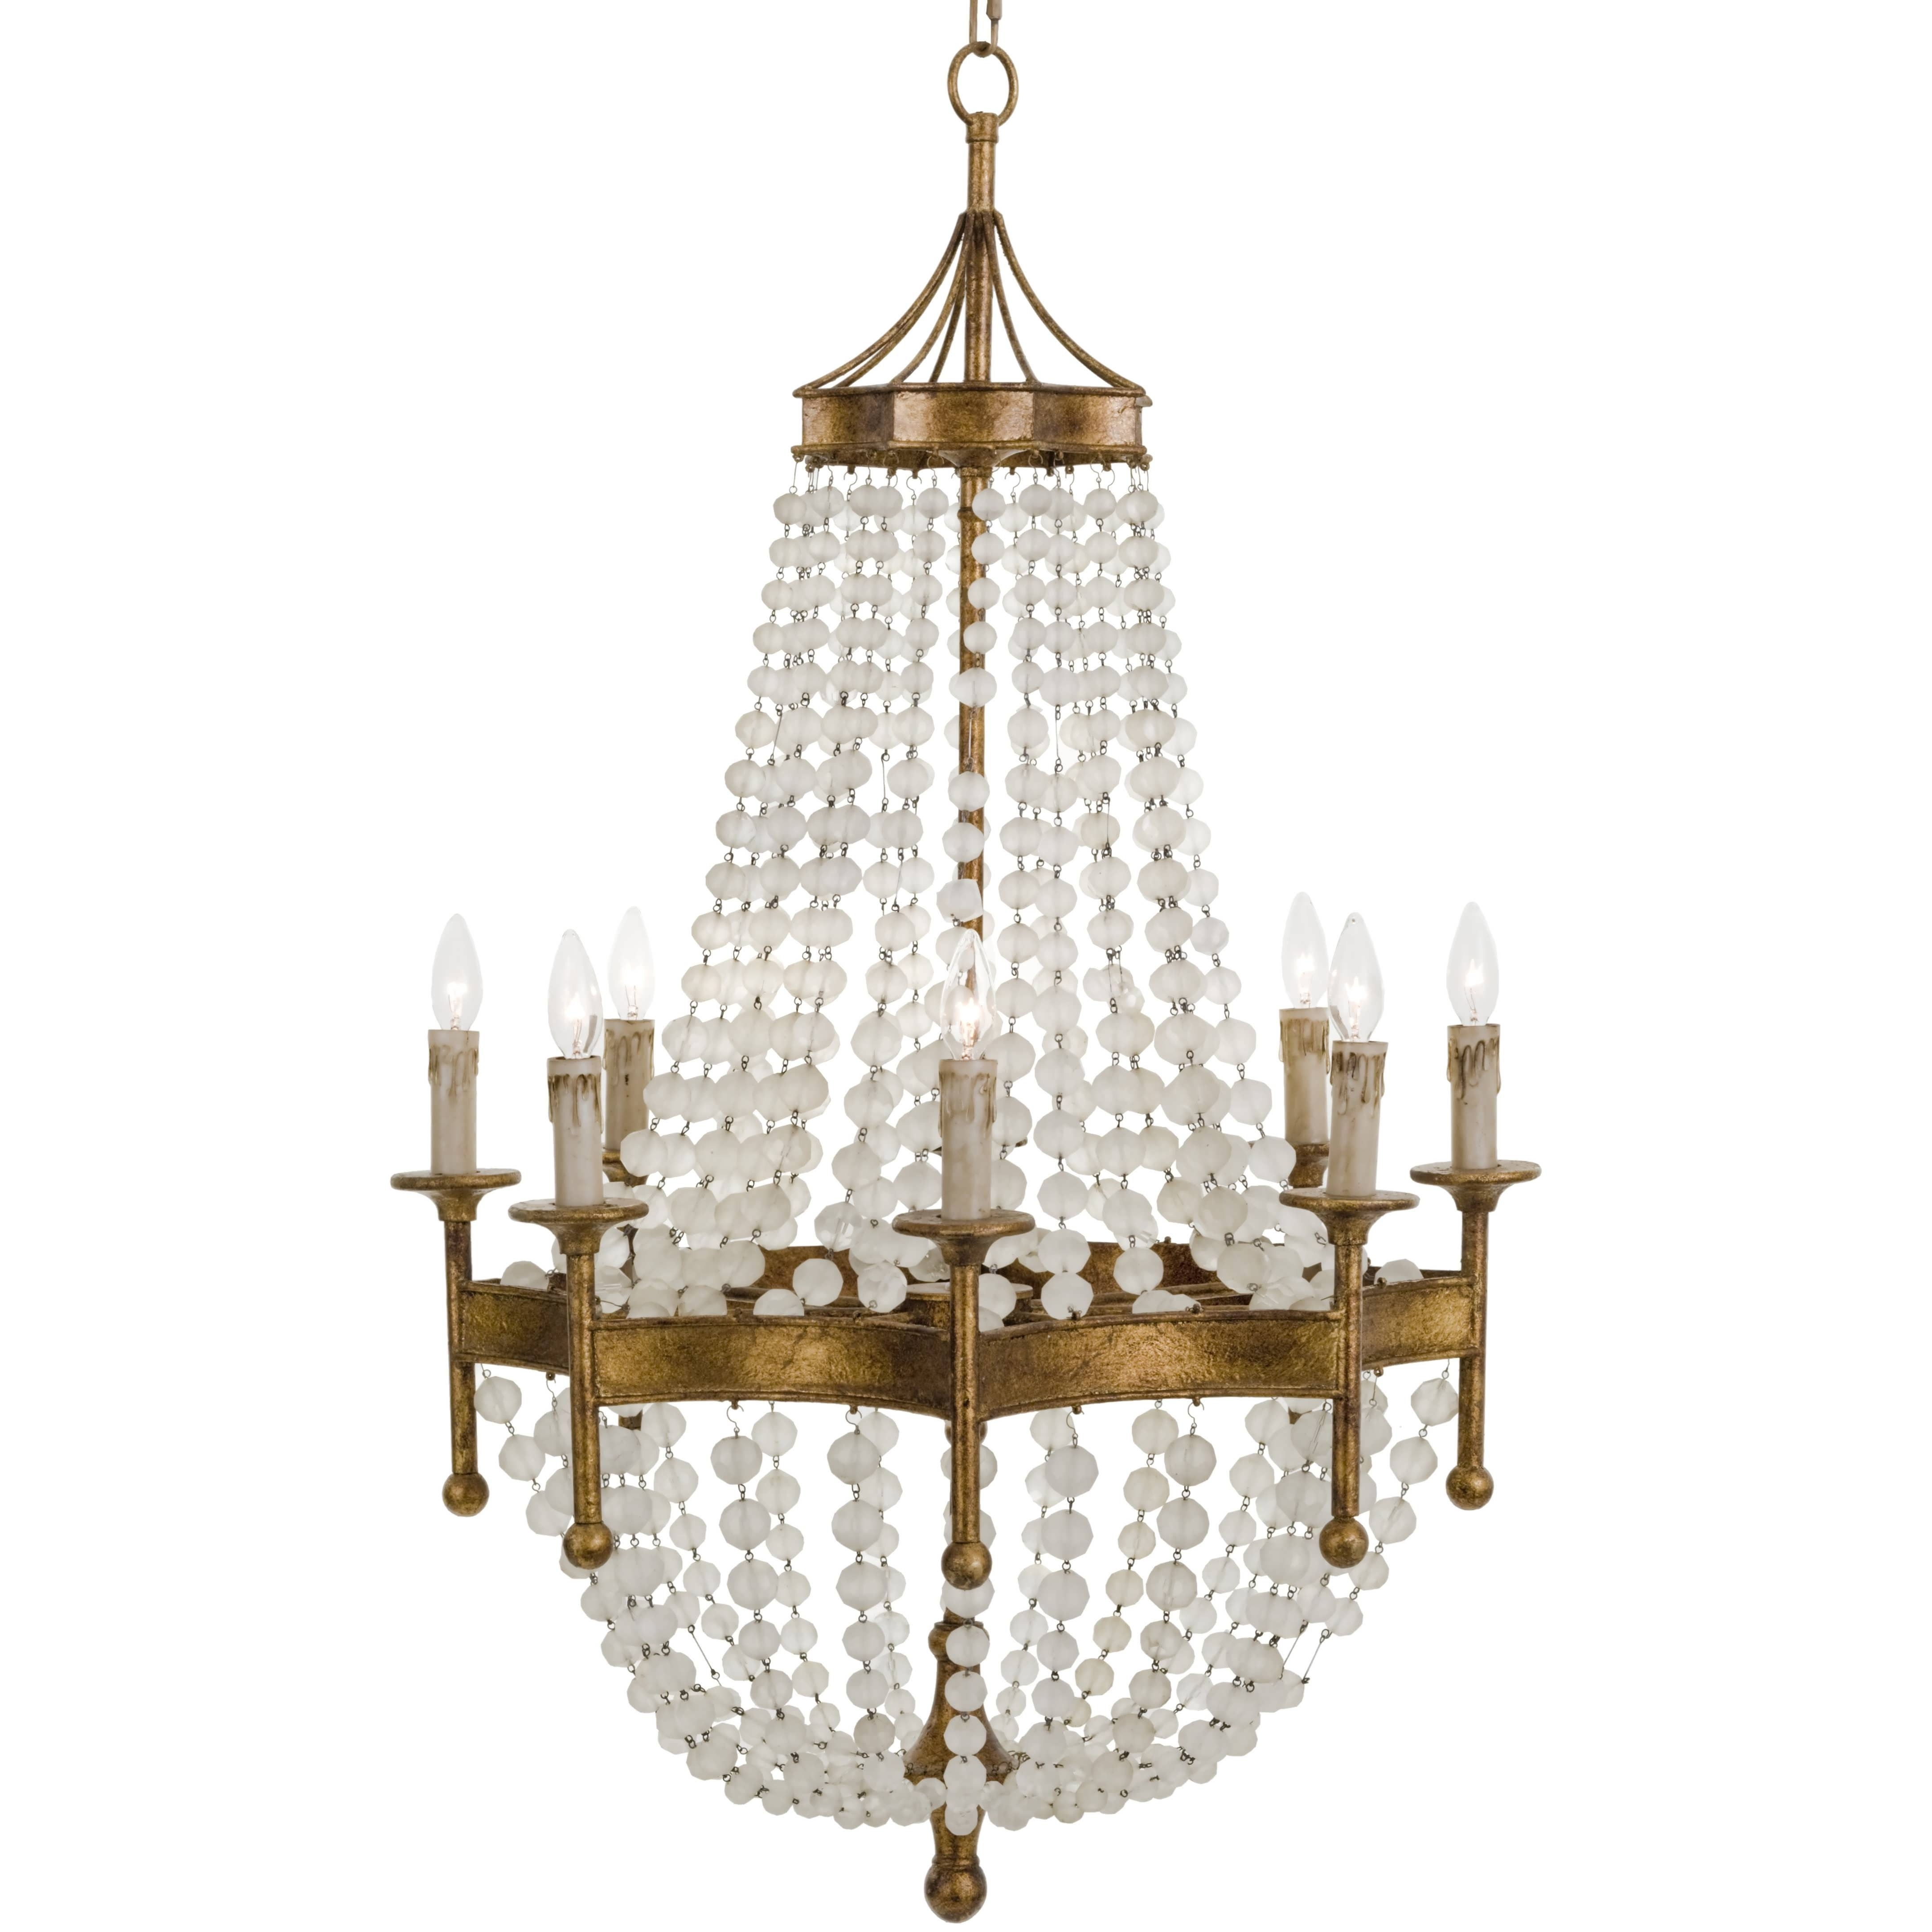 Well Known Small Turquoise Beaded Chandeliers Throughout Chandelier : Beaded Light Fixture Turquoise Beaded Chandelier (View 18 of 20)